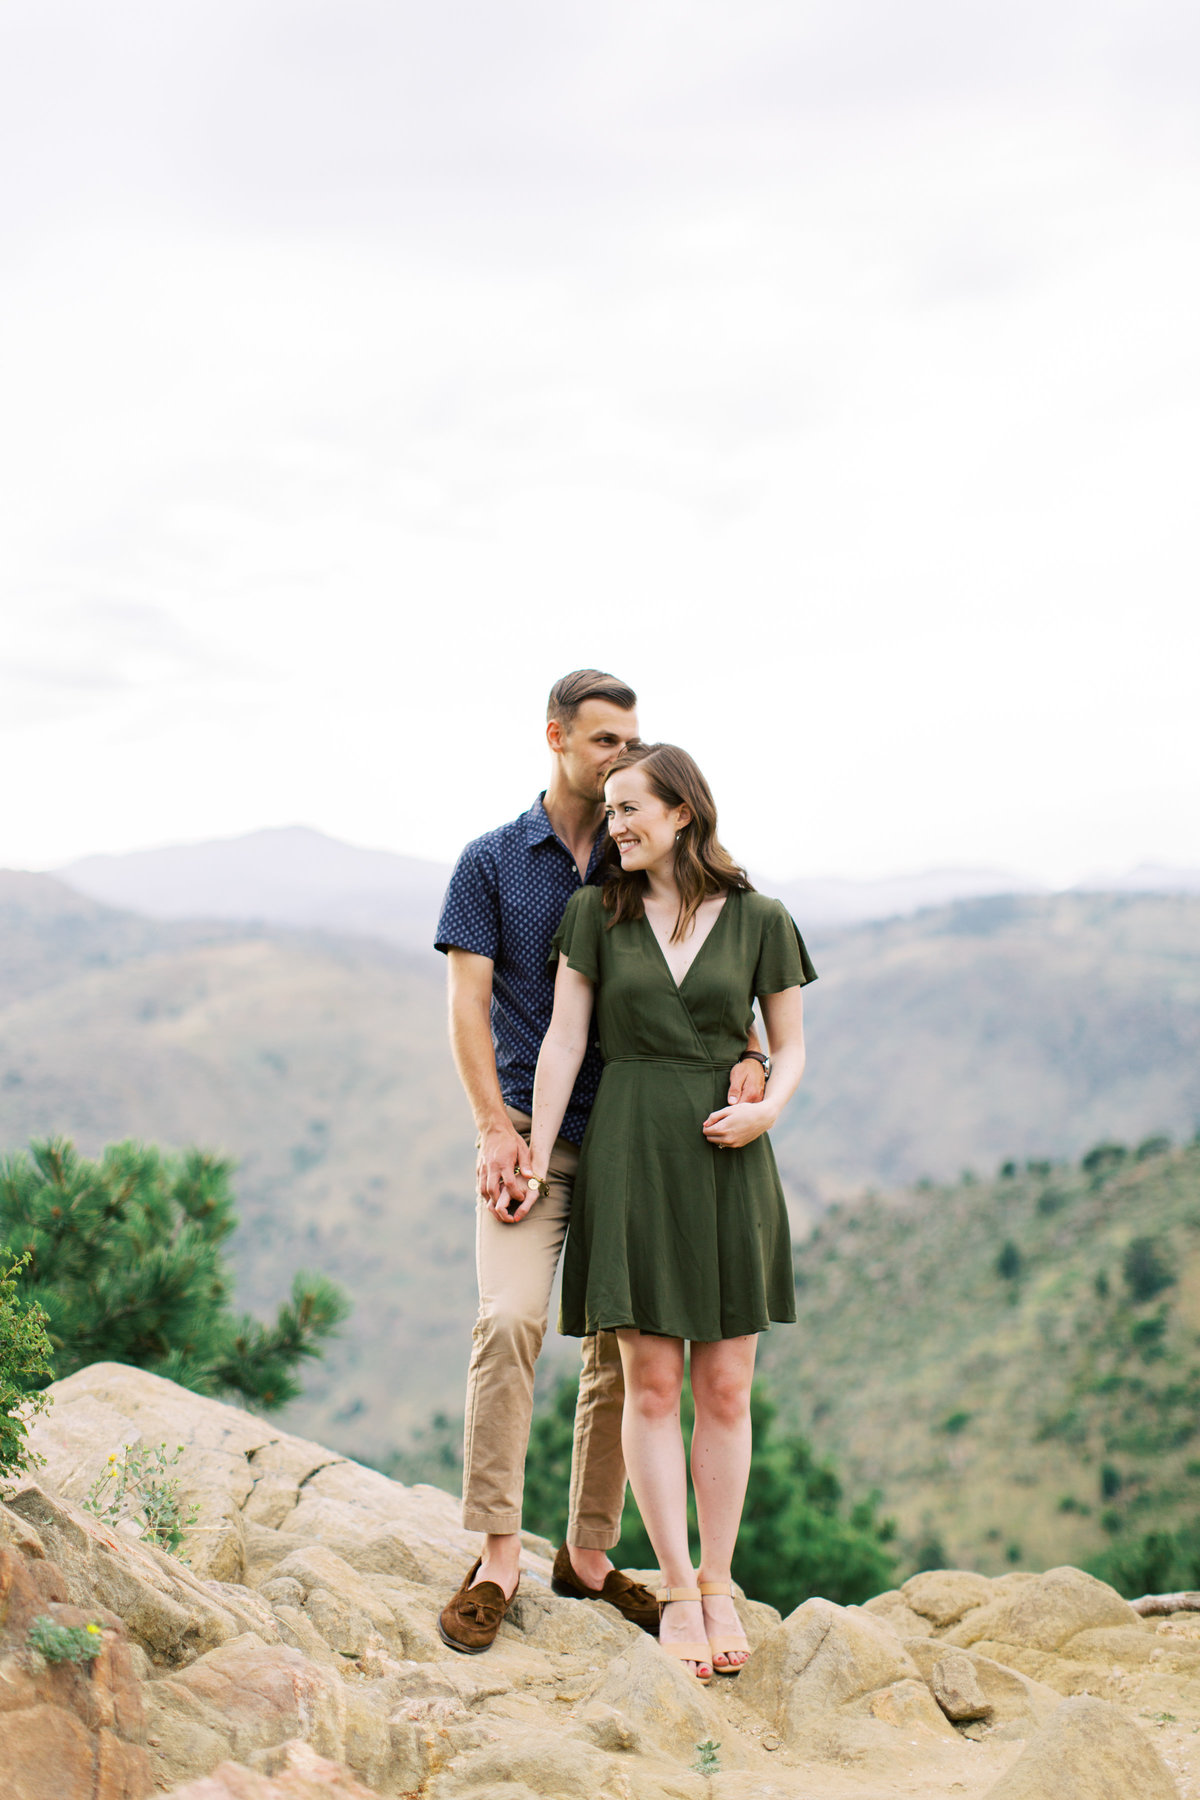 KristinPatrick_Engagement_July312019_96